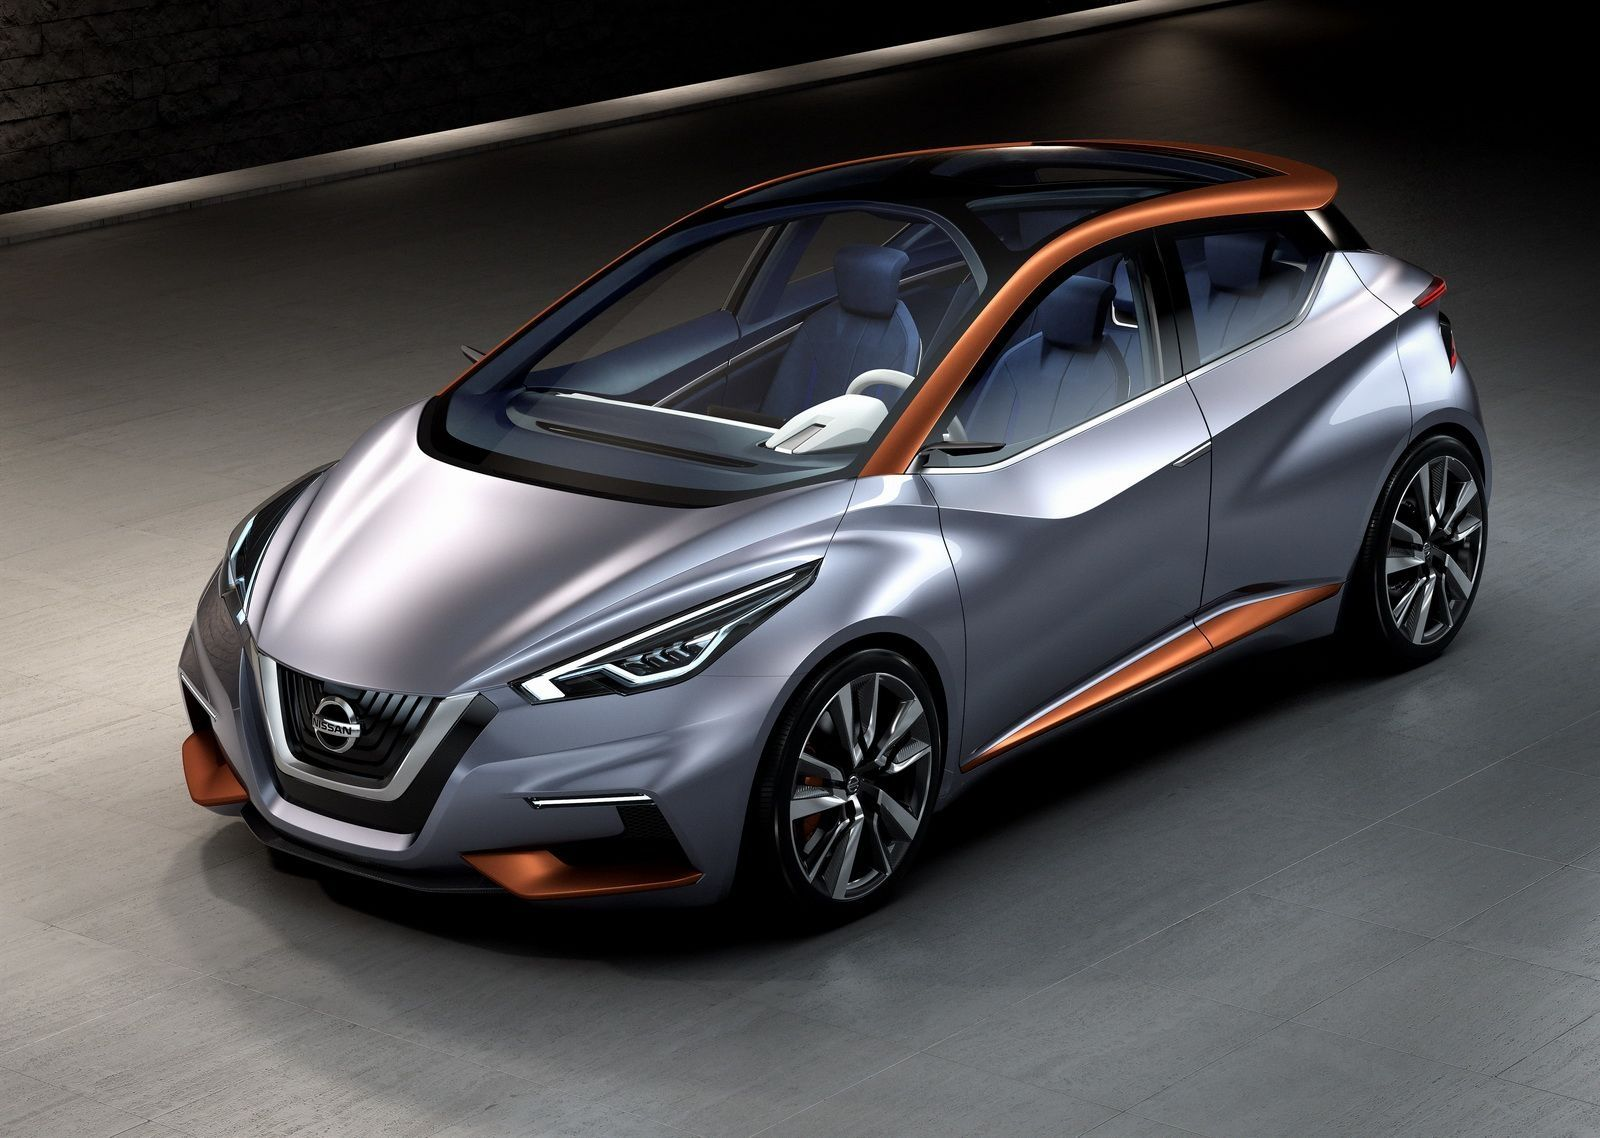 Best Nissan Micra 2020 Price and Review Concept cars